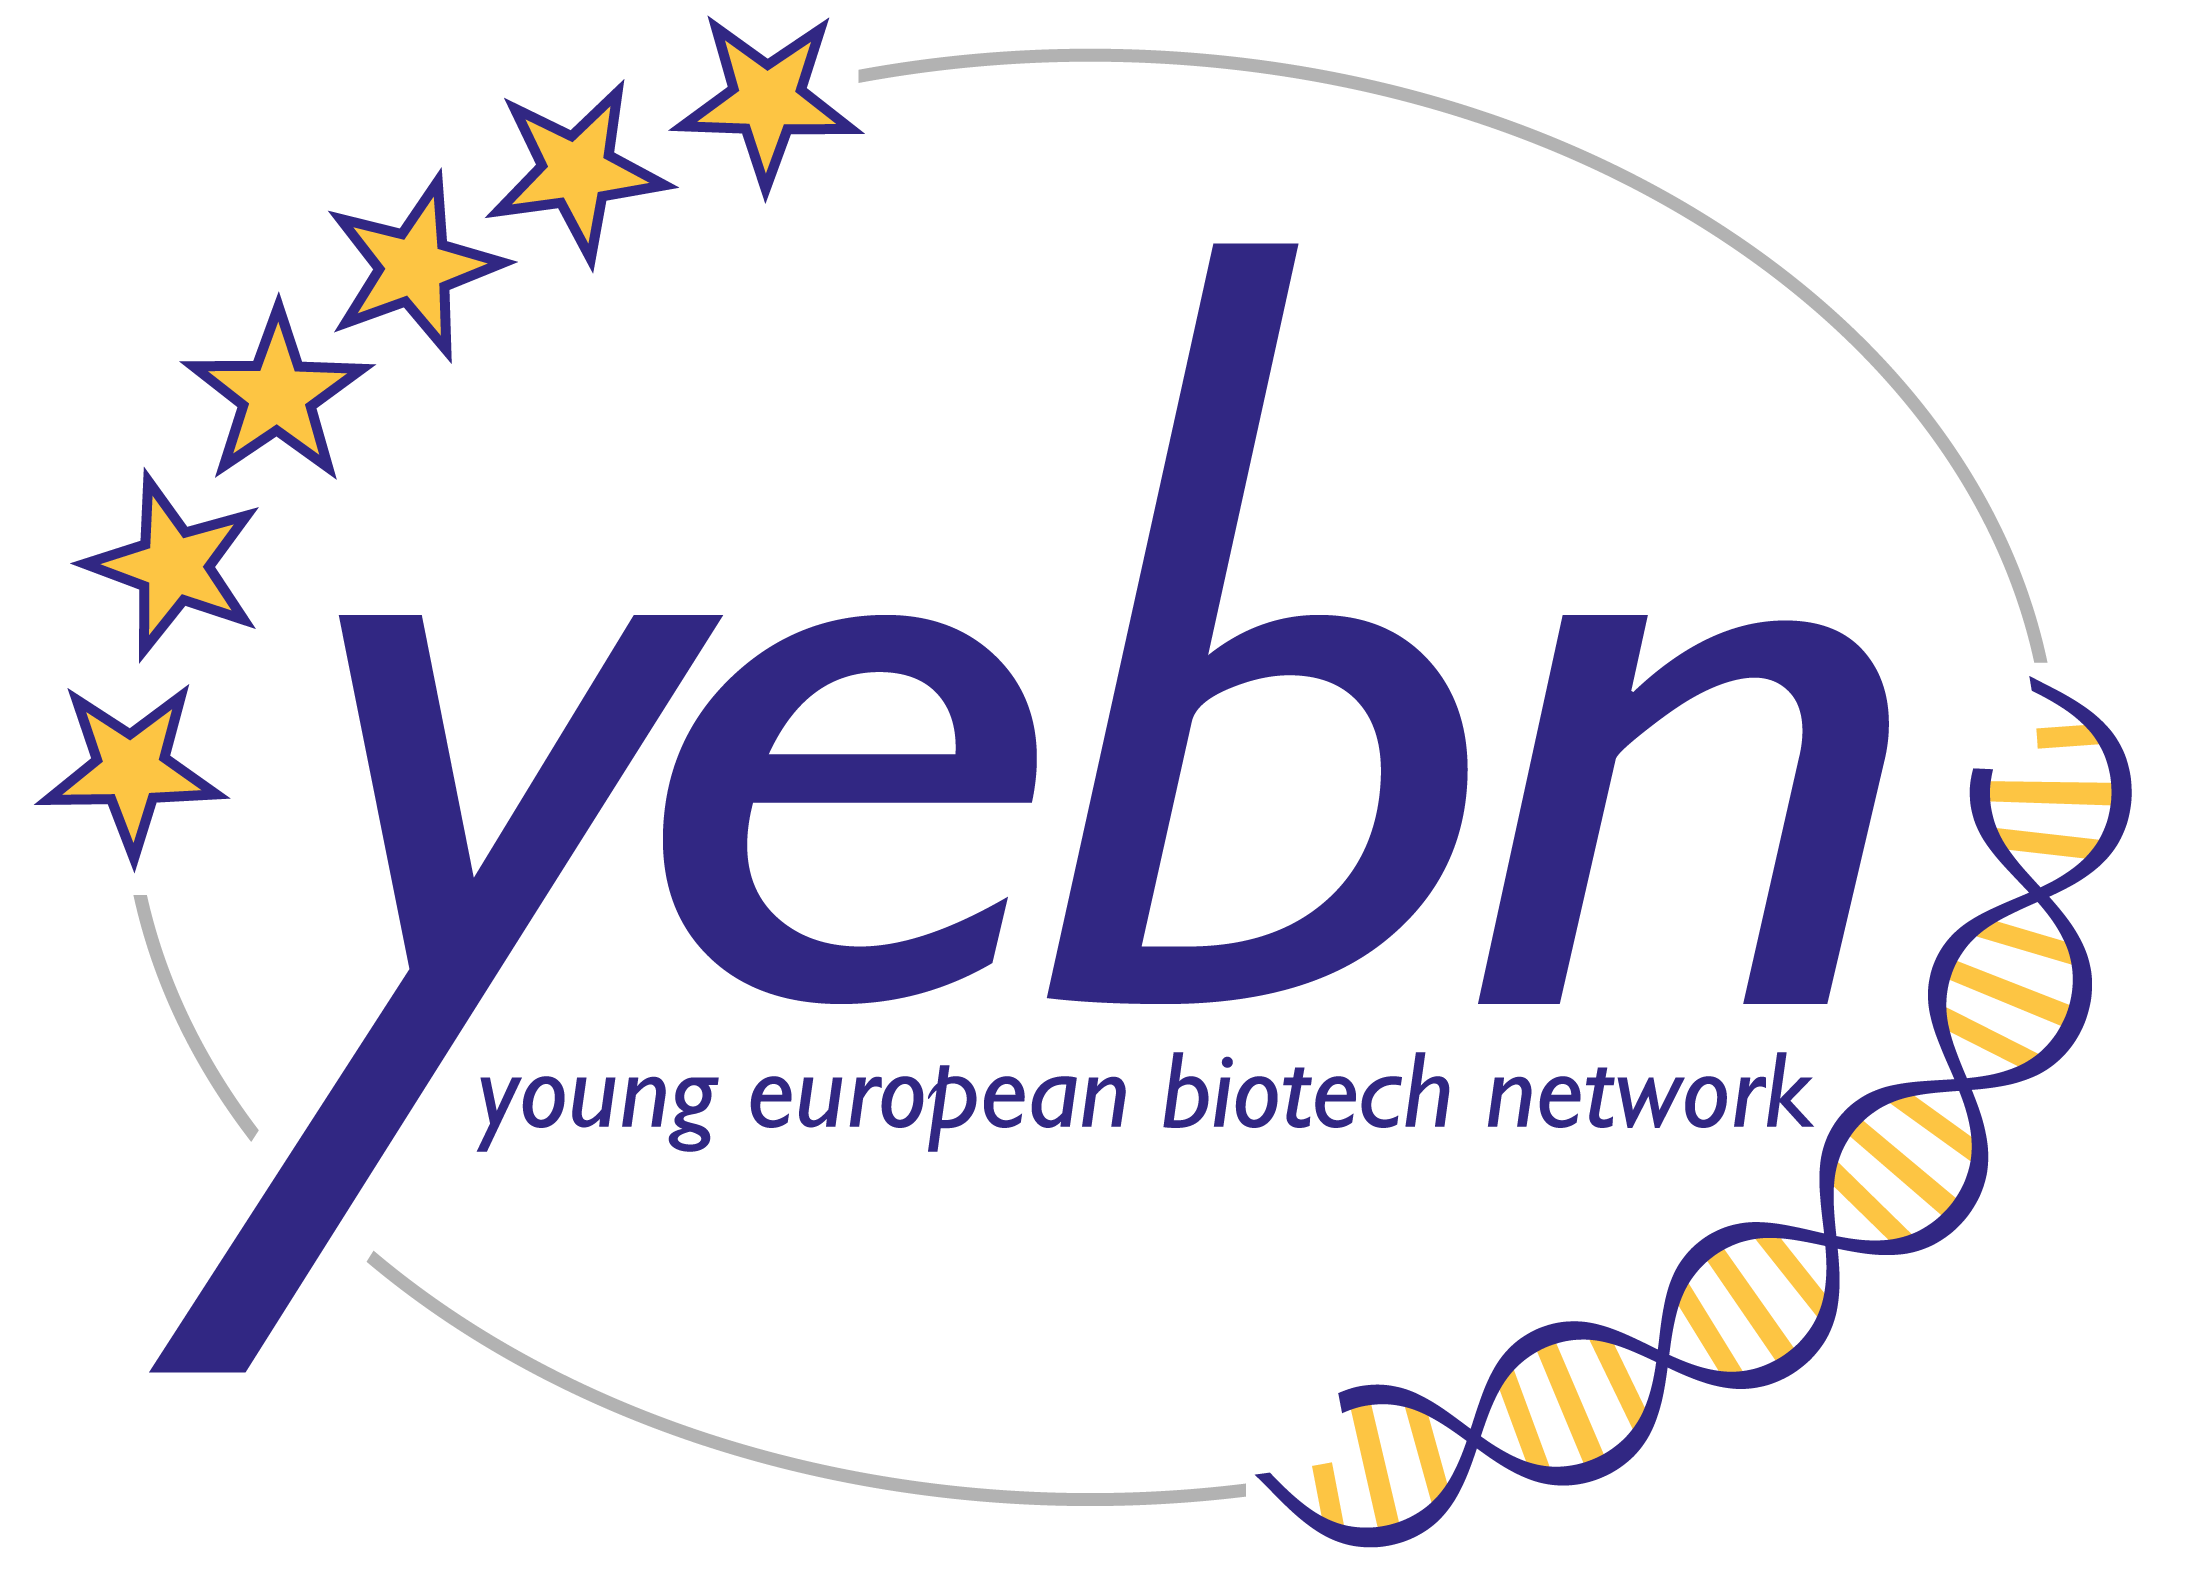 logo for Young European Biotech Network